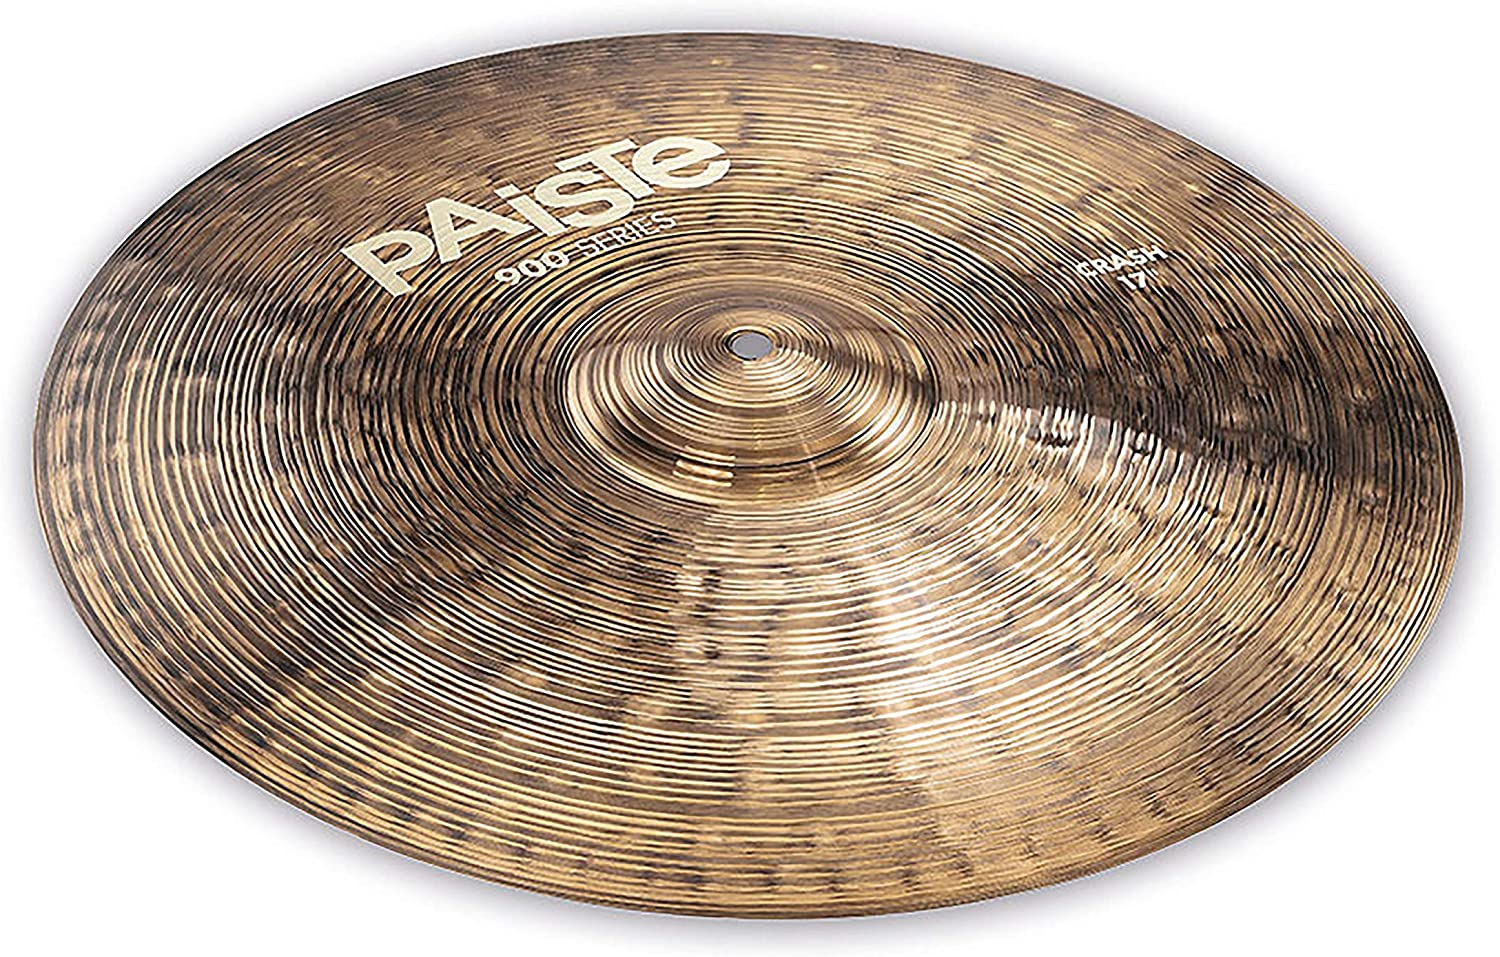 Paiste Max 53% OFF 900 Series Crash Cymbal Ranking TOP16 17 in.